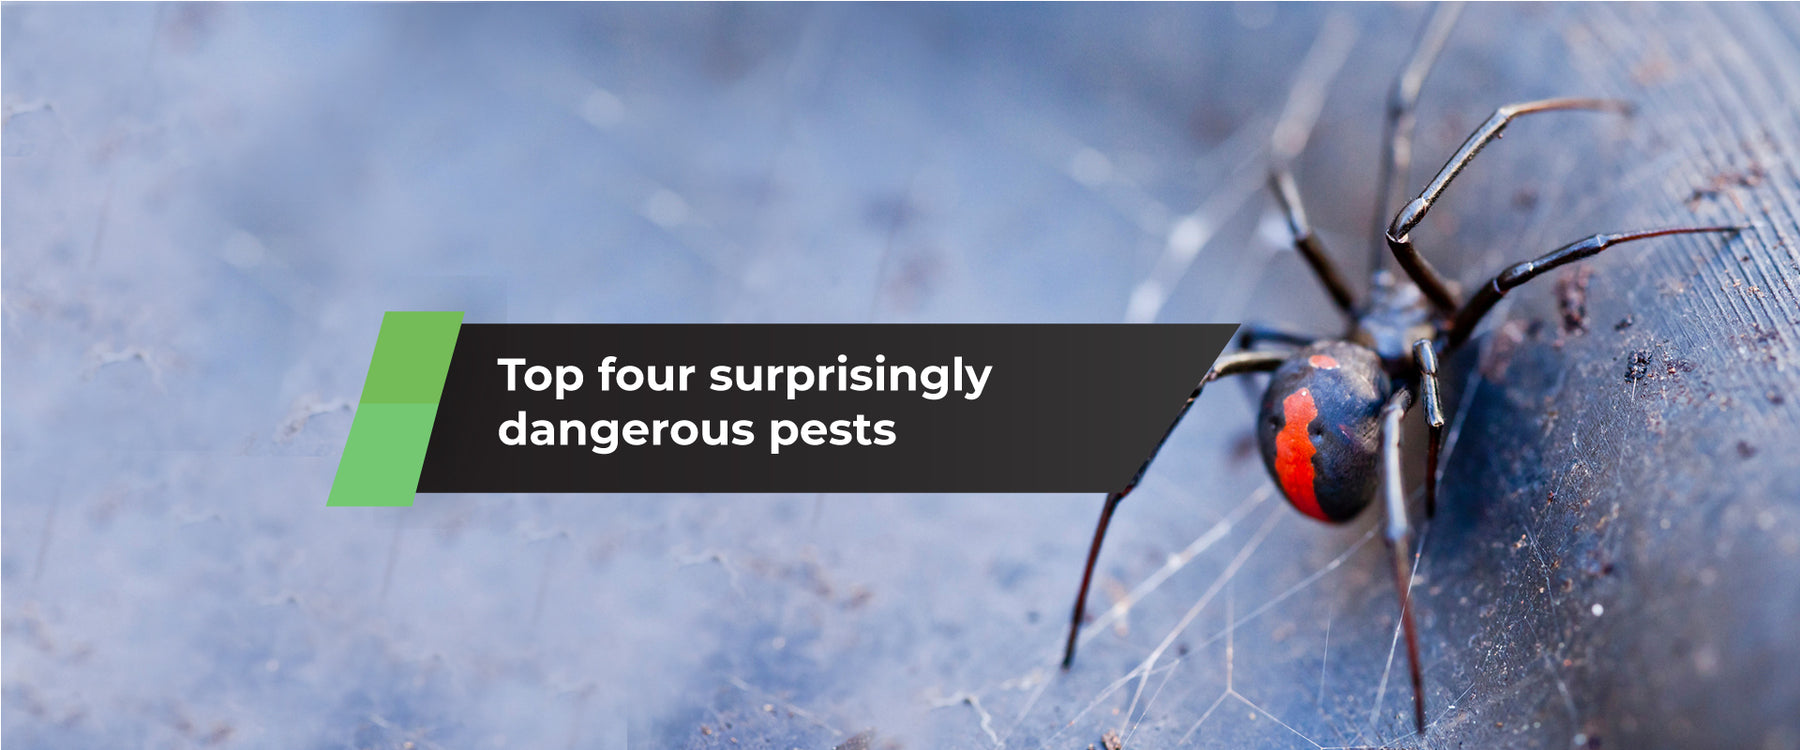 Top Four Surprisingly Dangerous Pests